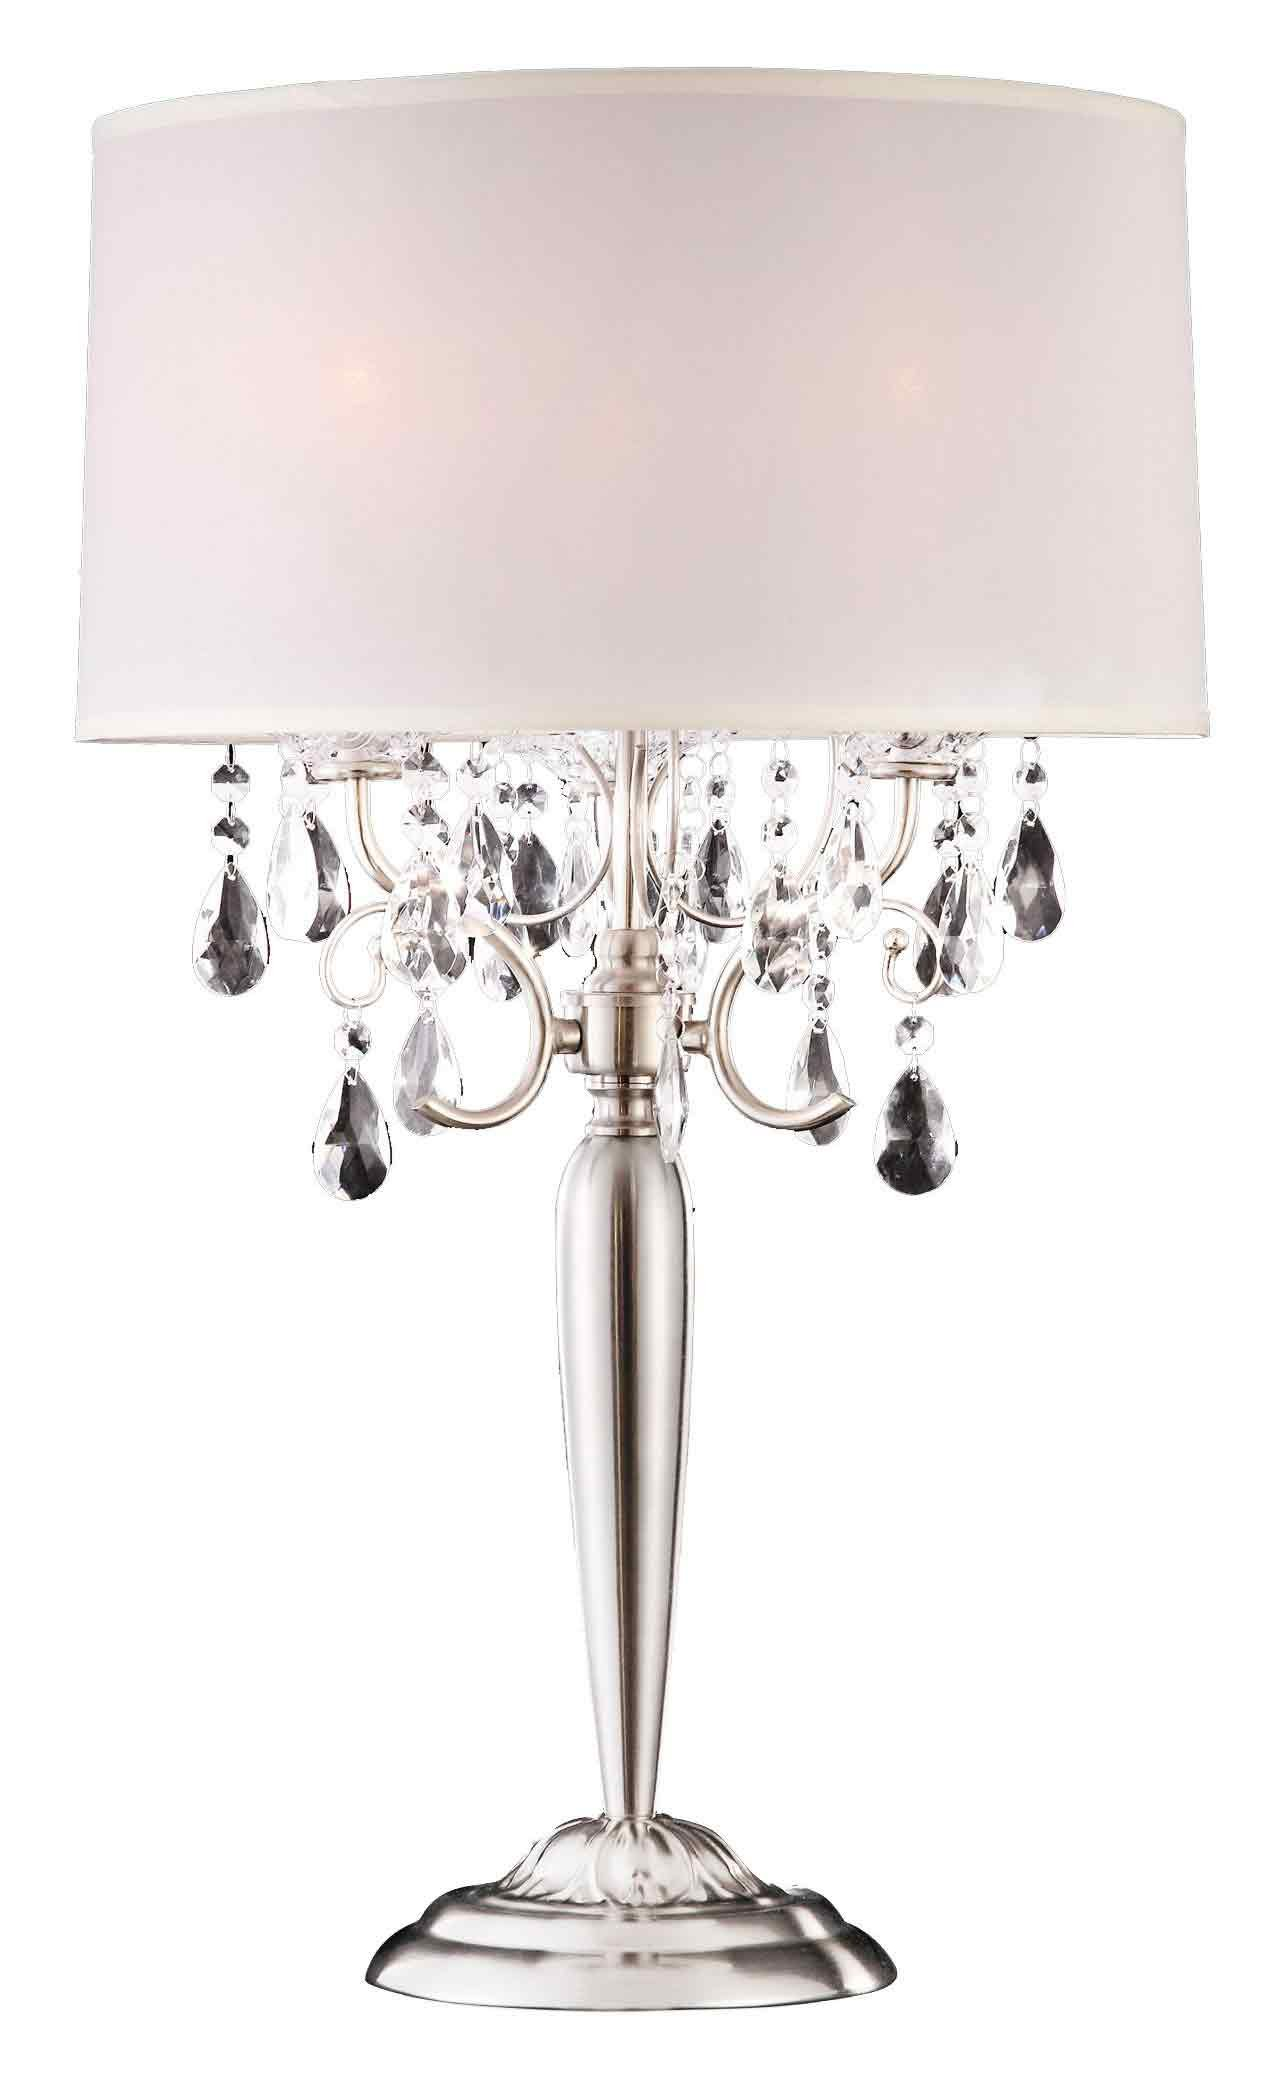 Ore International K-5109T 29.5-Inch Crystal Table Lamp, Silver